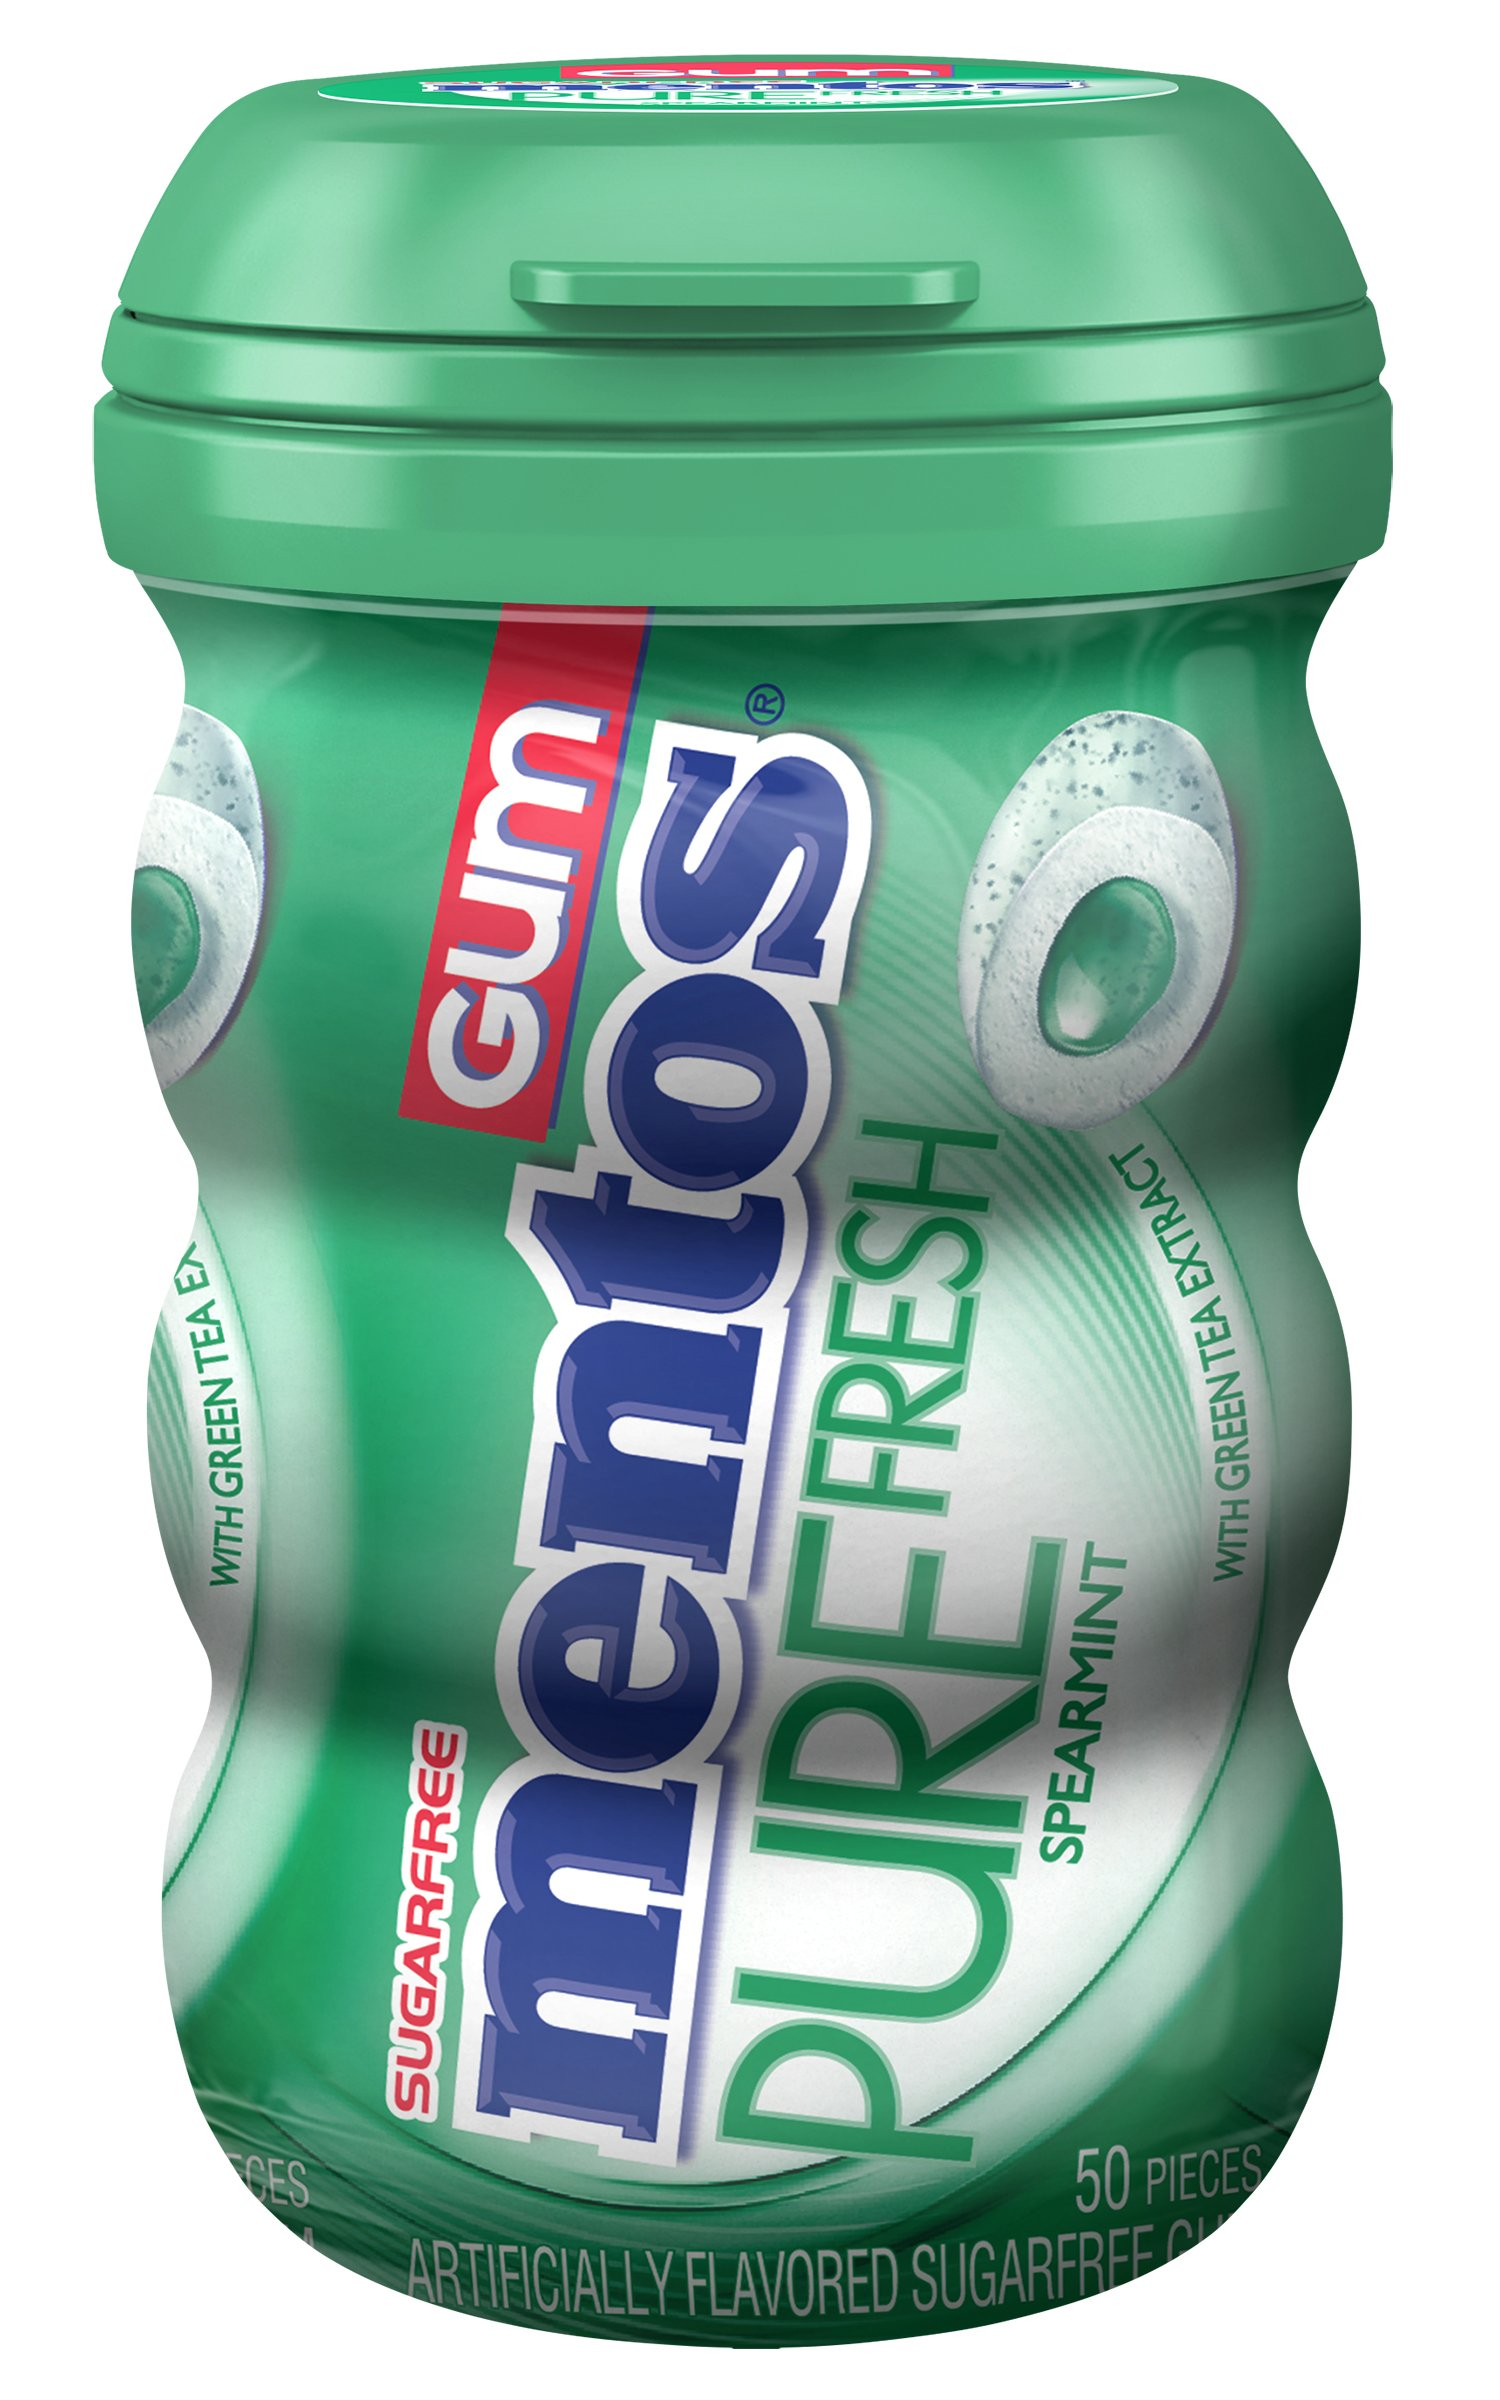 Mentos Pure Fresh Sugar-Free Chewing Gum with Xylitol, Spearmint, 50 Piece Bottle